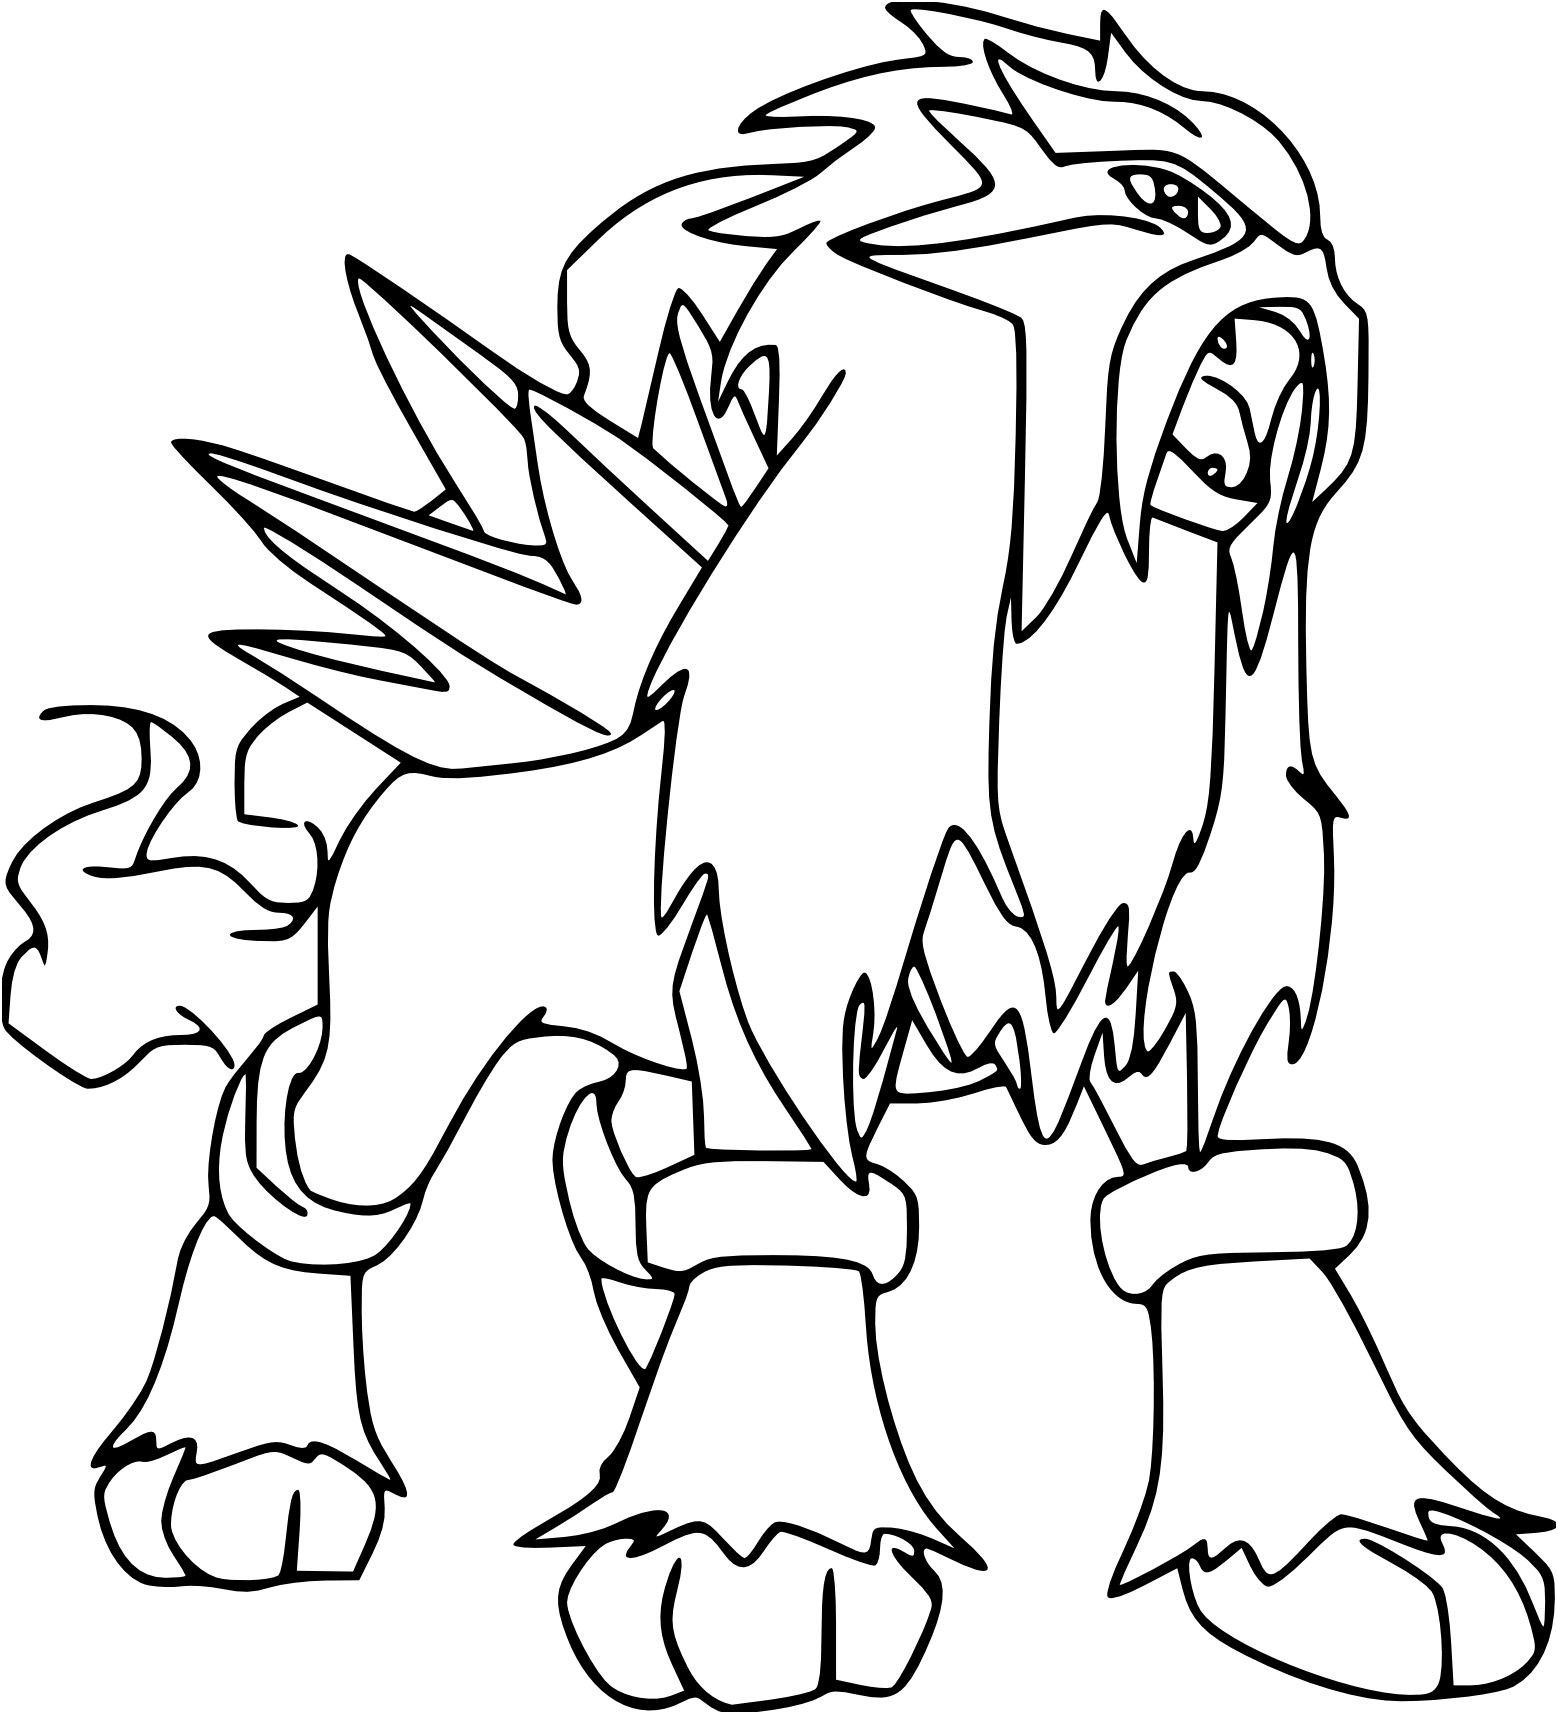 Coloriage Pokemon A Colorier Dessin Imprimer Serapportanta